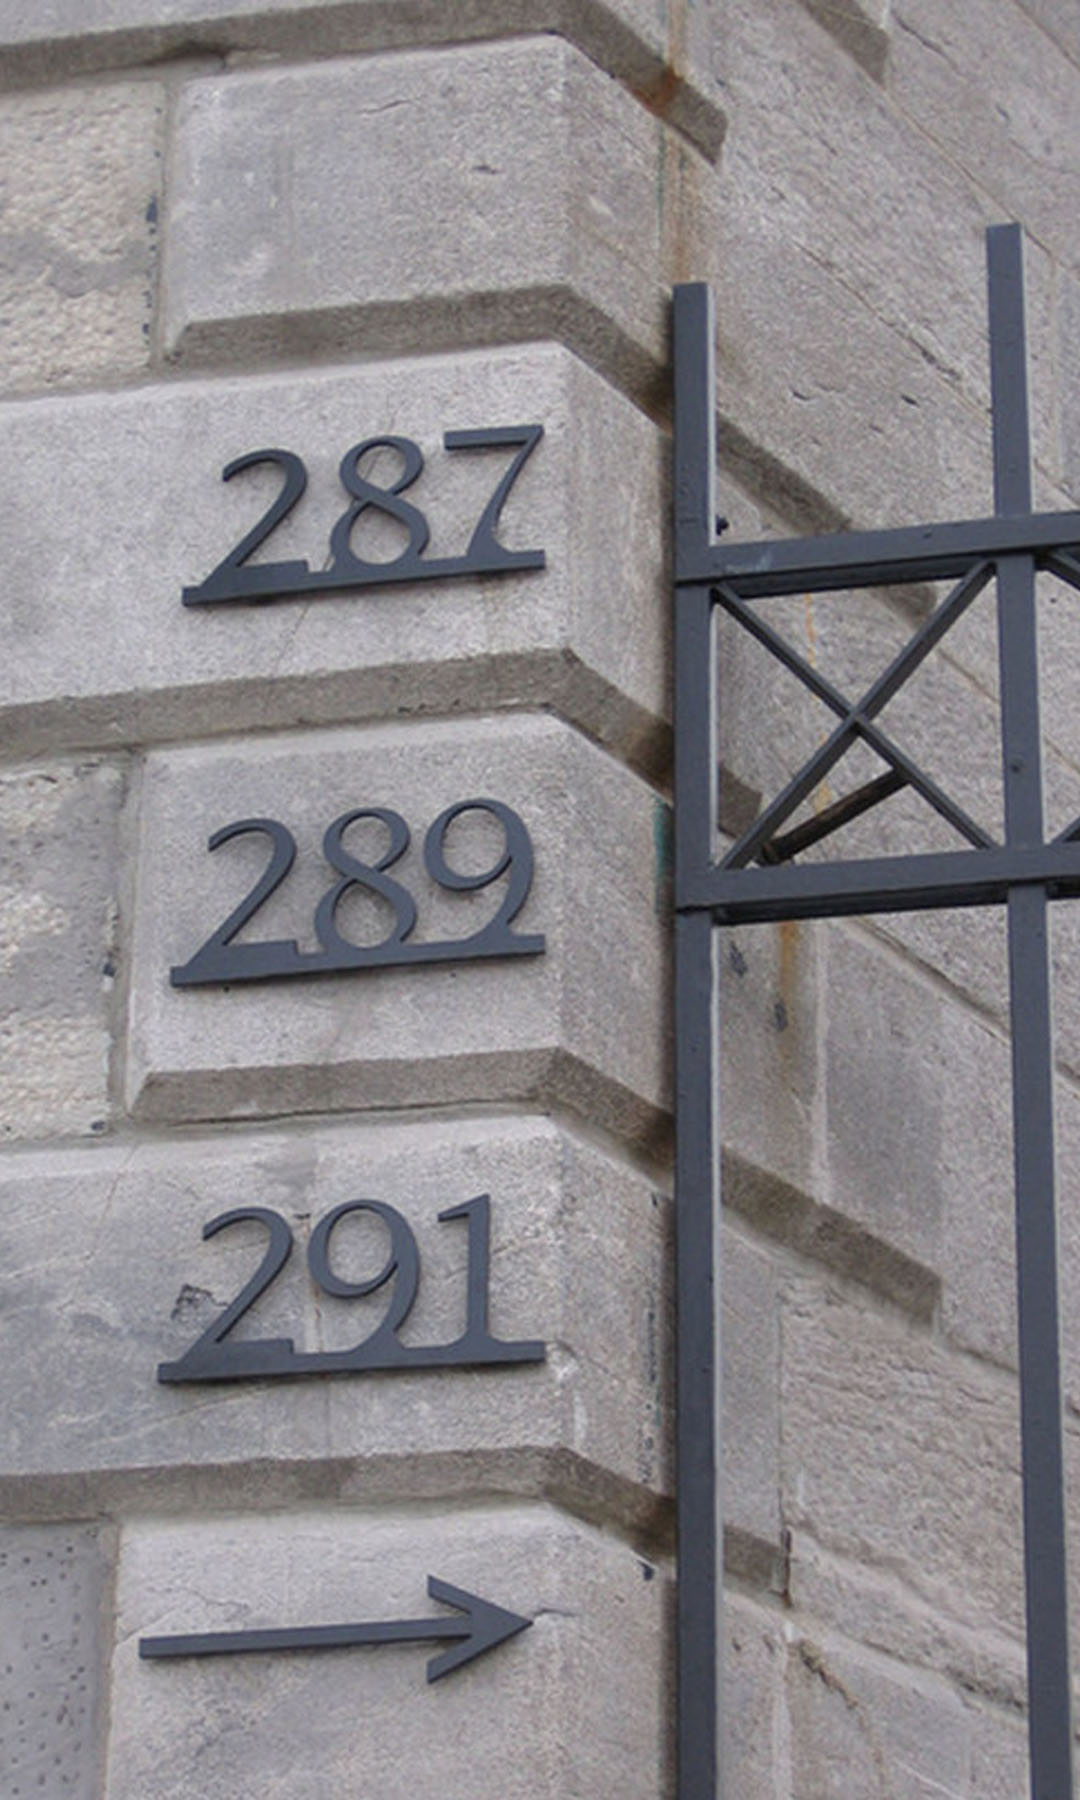 287 289 291 - The classic style of these numbers complements the architecture found on this grey-stone in Old Montreal condo building.Material: Stainless steelFinish: baked enamel semi-gloss blackThickness: 1/4 inchHeight: 4-inch numbers on 1/2 inch bar